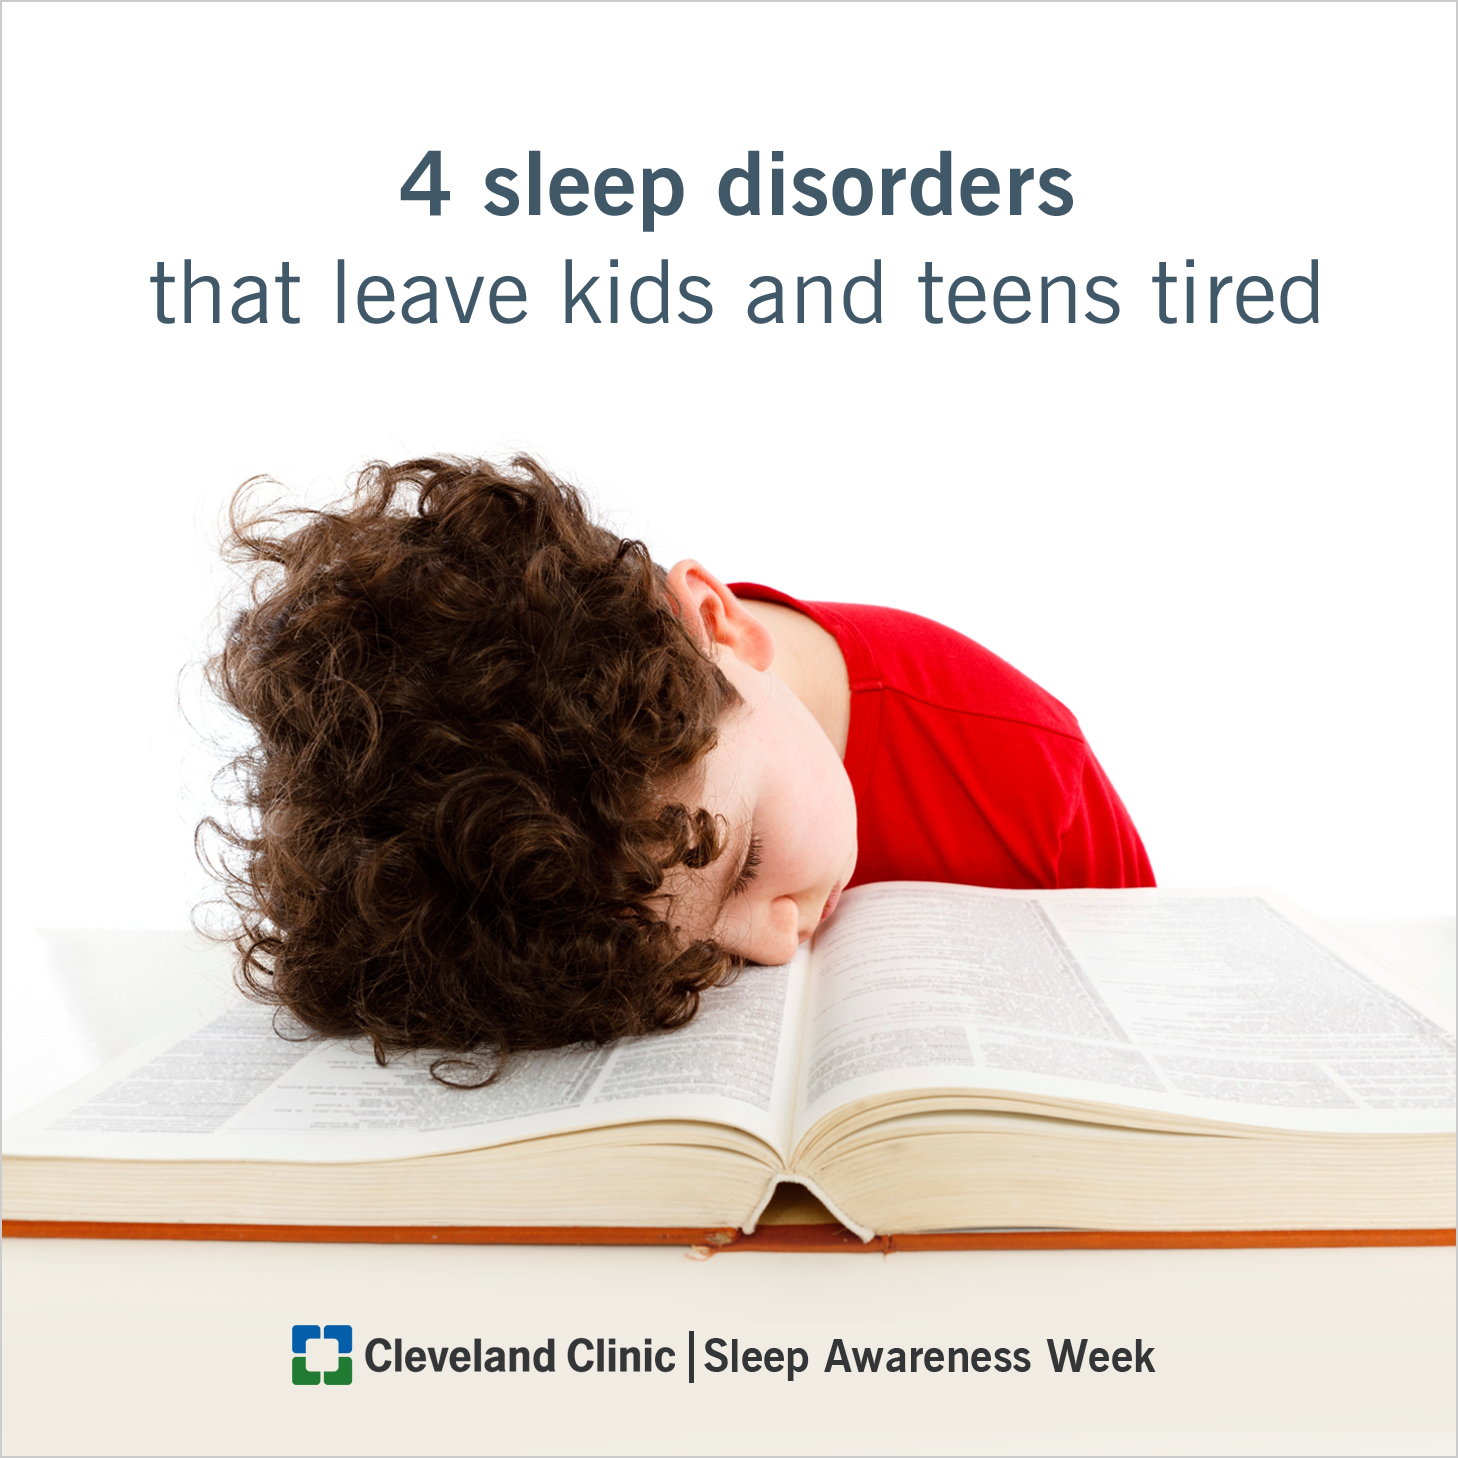 Necessary words... on teen sleep issues when